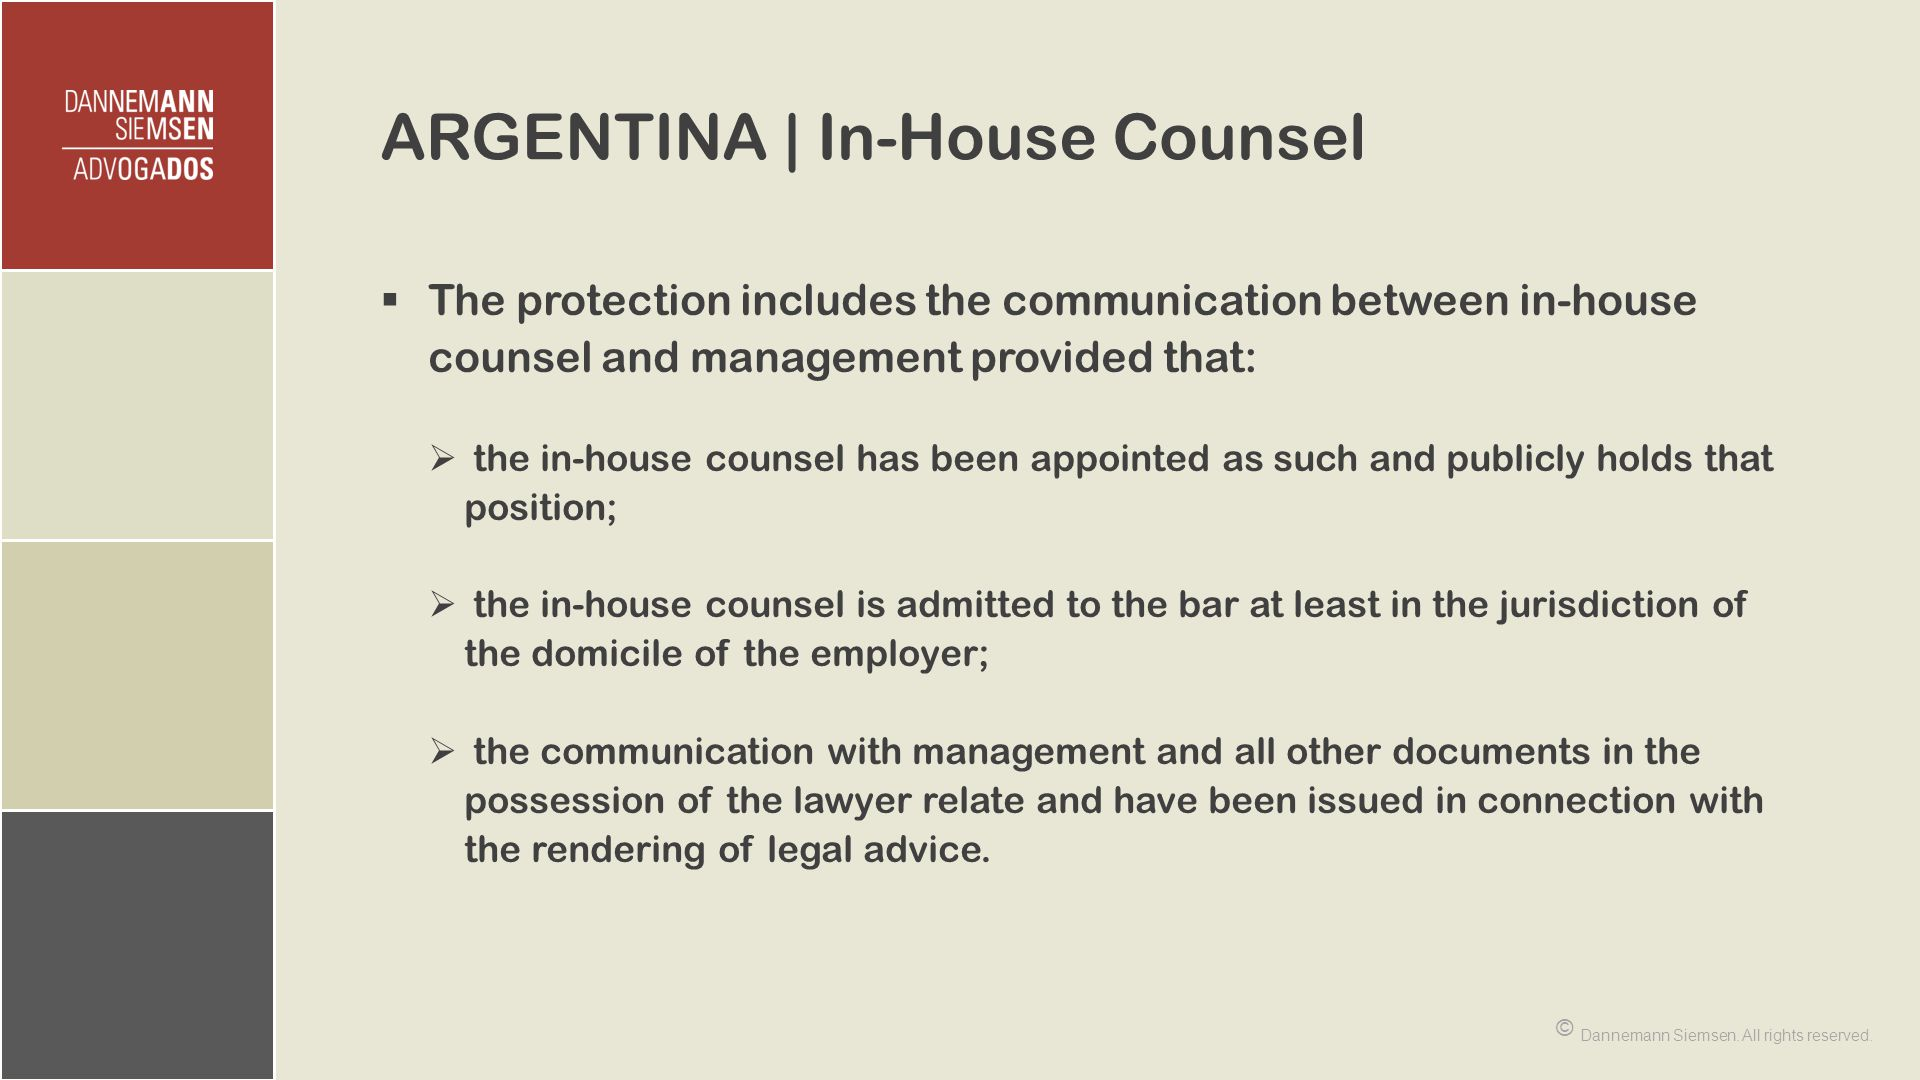 ARGENTINA | In-House Counsel  The protection includes the communication between in-house counsel and management provided that:  the in-house counsel has been appointed as such and publicly holds that position;  the in-house counsel is admitted to the bar at least in the jurisdiction of the domicile of the employer;  the communication with management and all other documents in the possession of the lawyer relate and have been issued in connection with the rendering of legal advice.